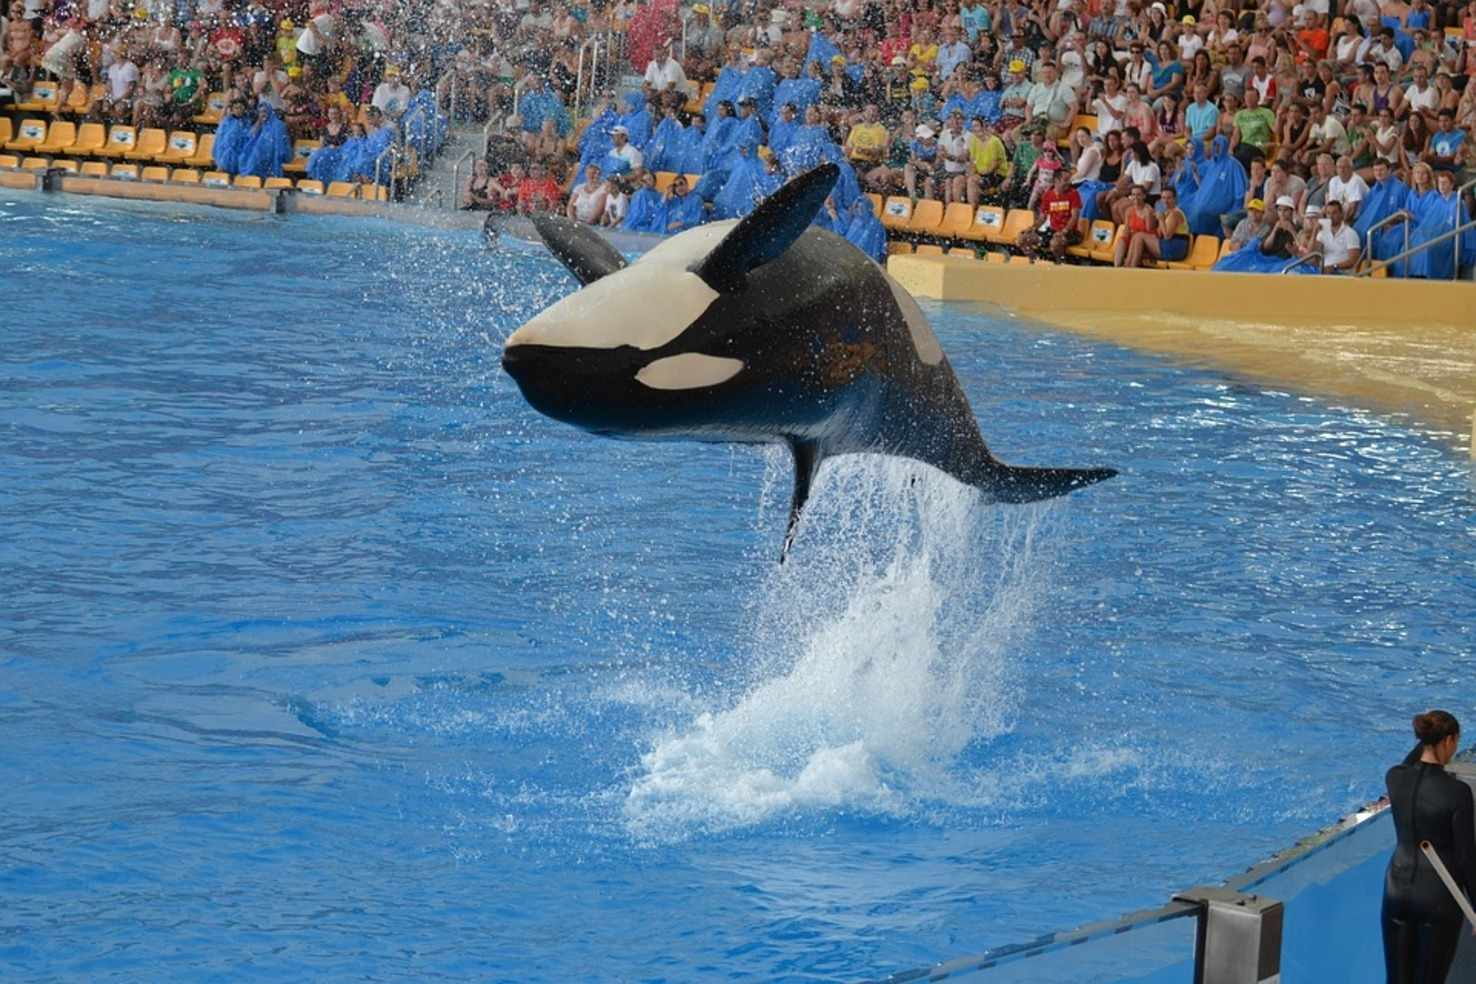 Large jump water park tenerife performance show orca